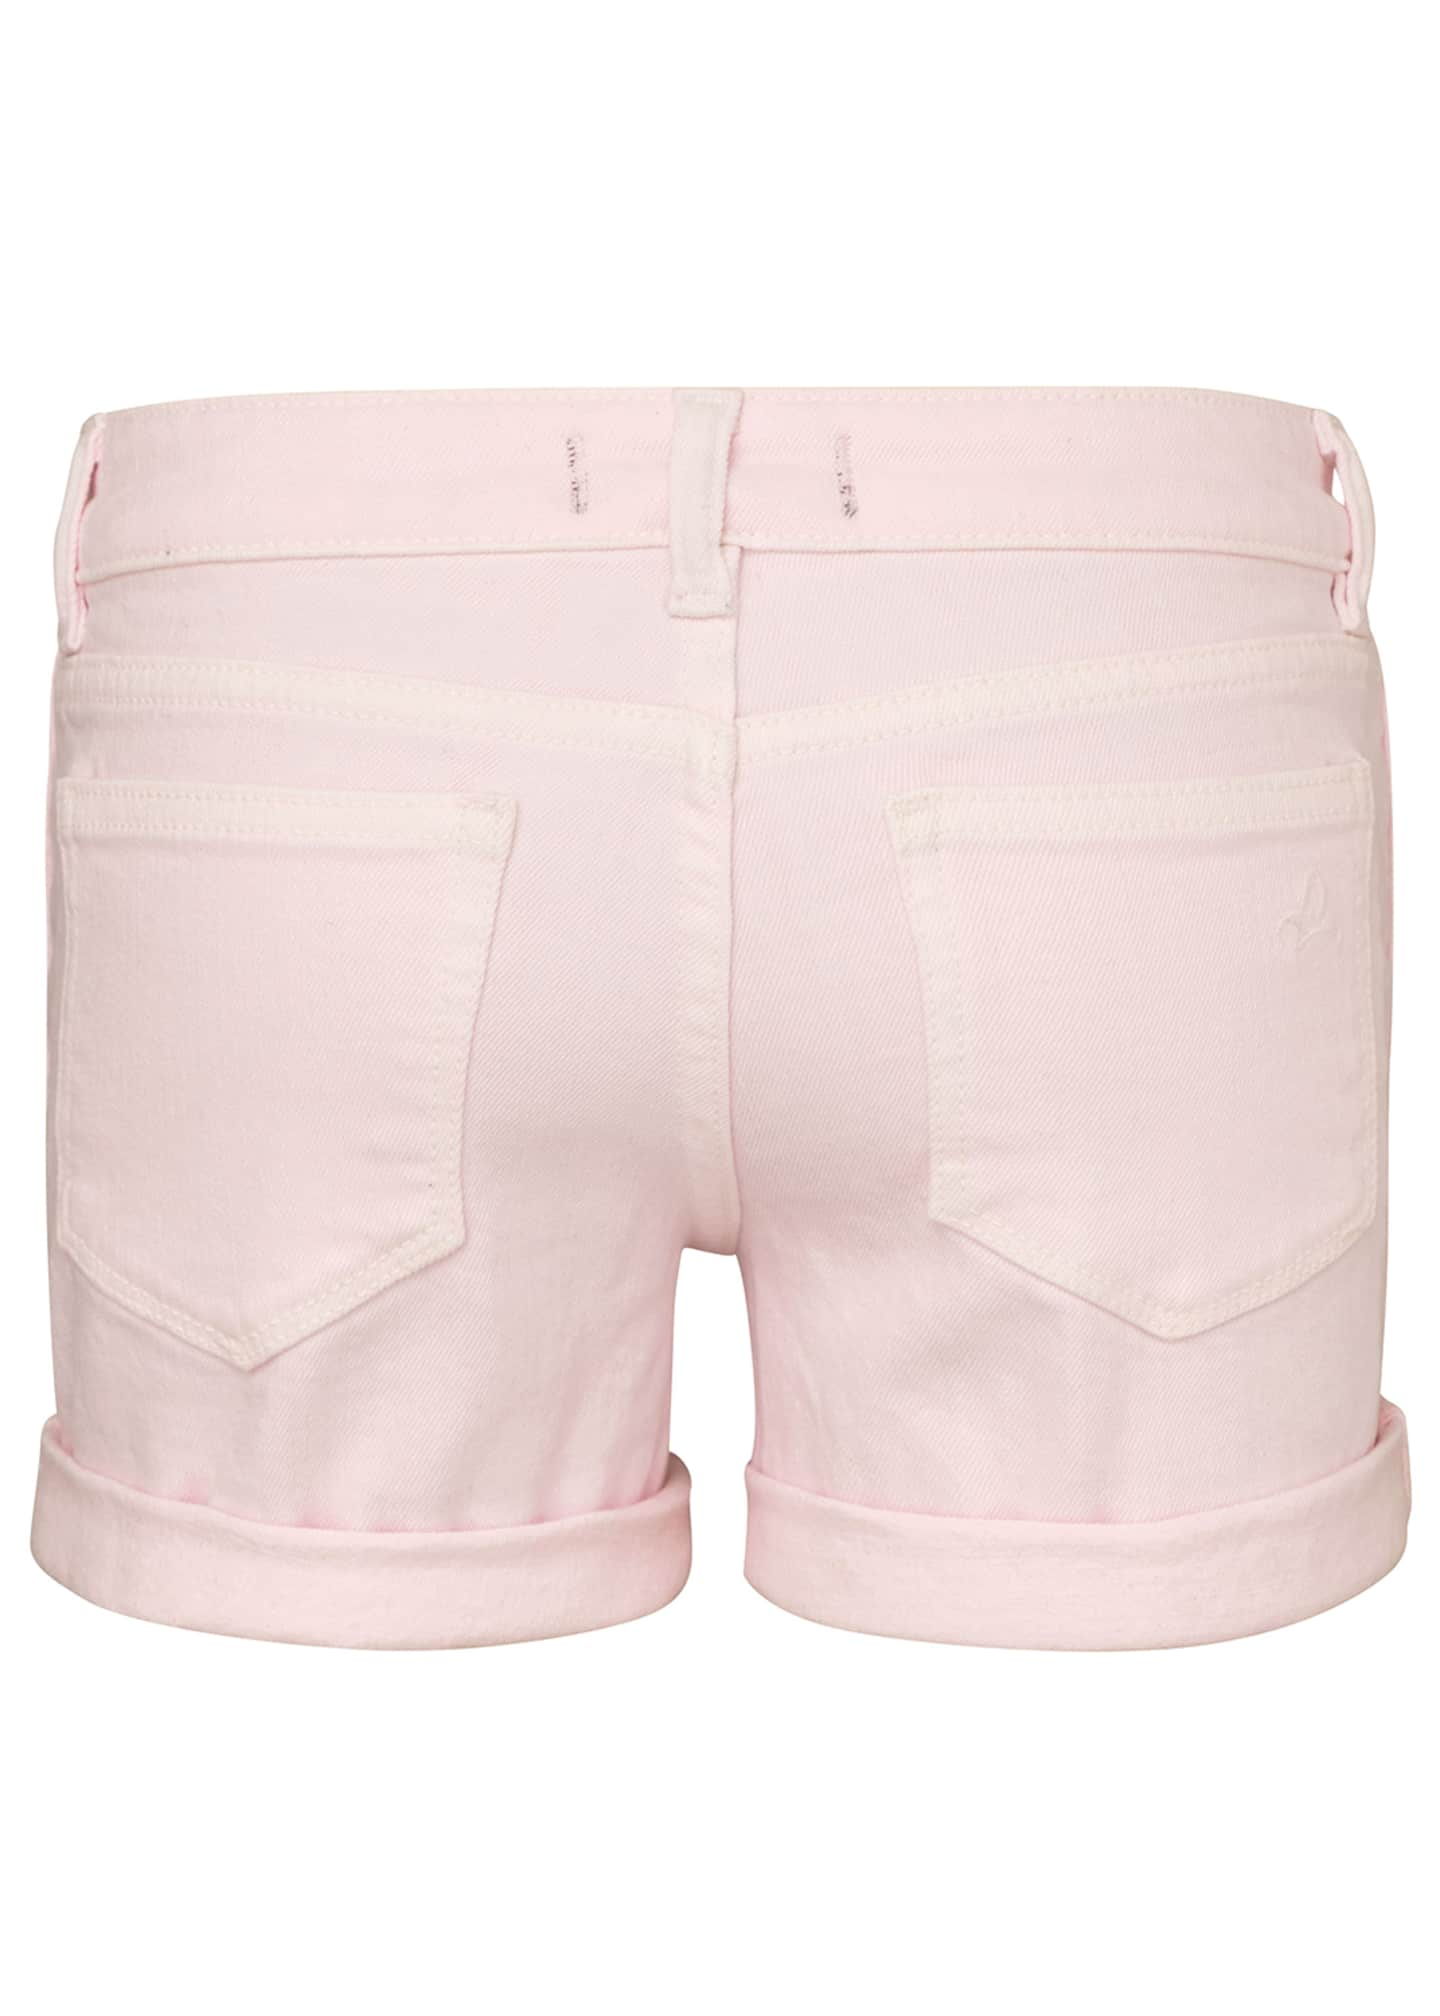 Image 2 of 2: Girl's Piper Cuffed Shorts, Size 7-16